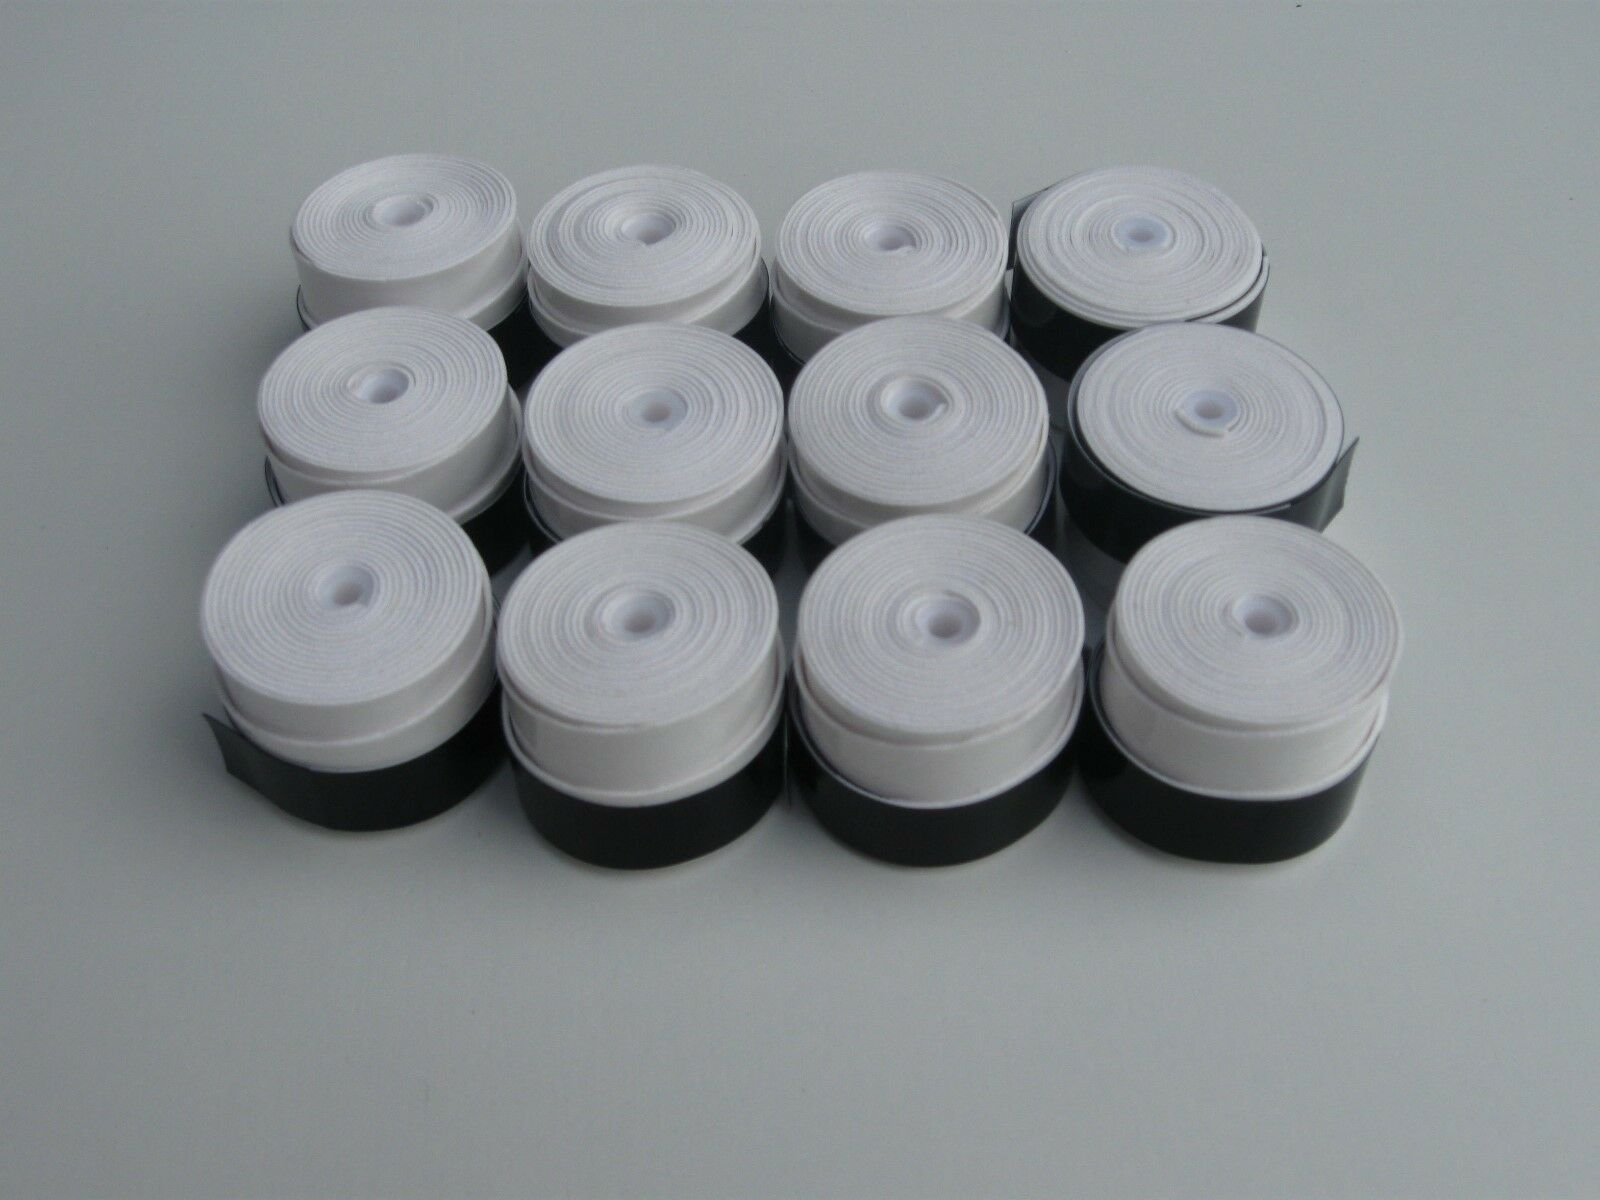 PLAYER SPECIAL EDITION OVERGRIPS - WHITE- BULK PURCHASE 60 Units